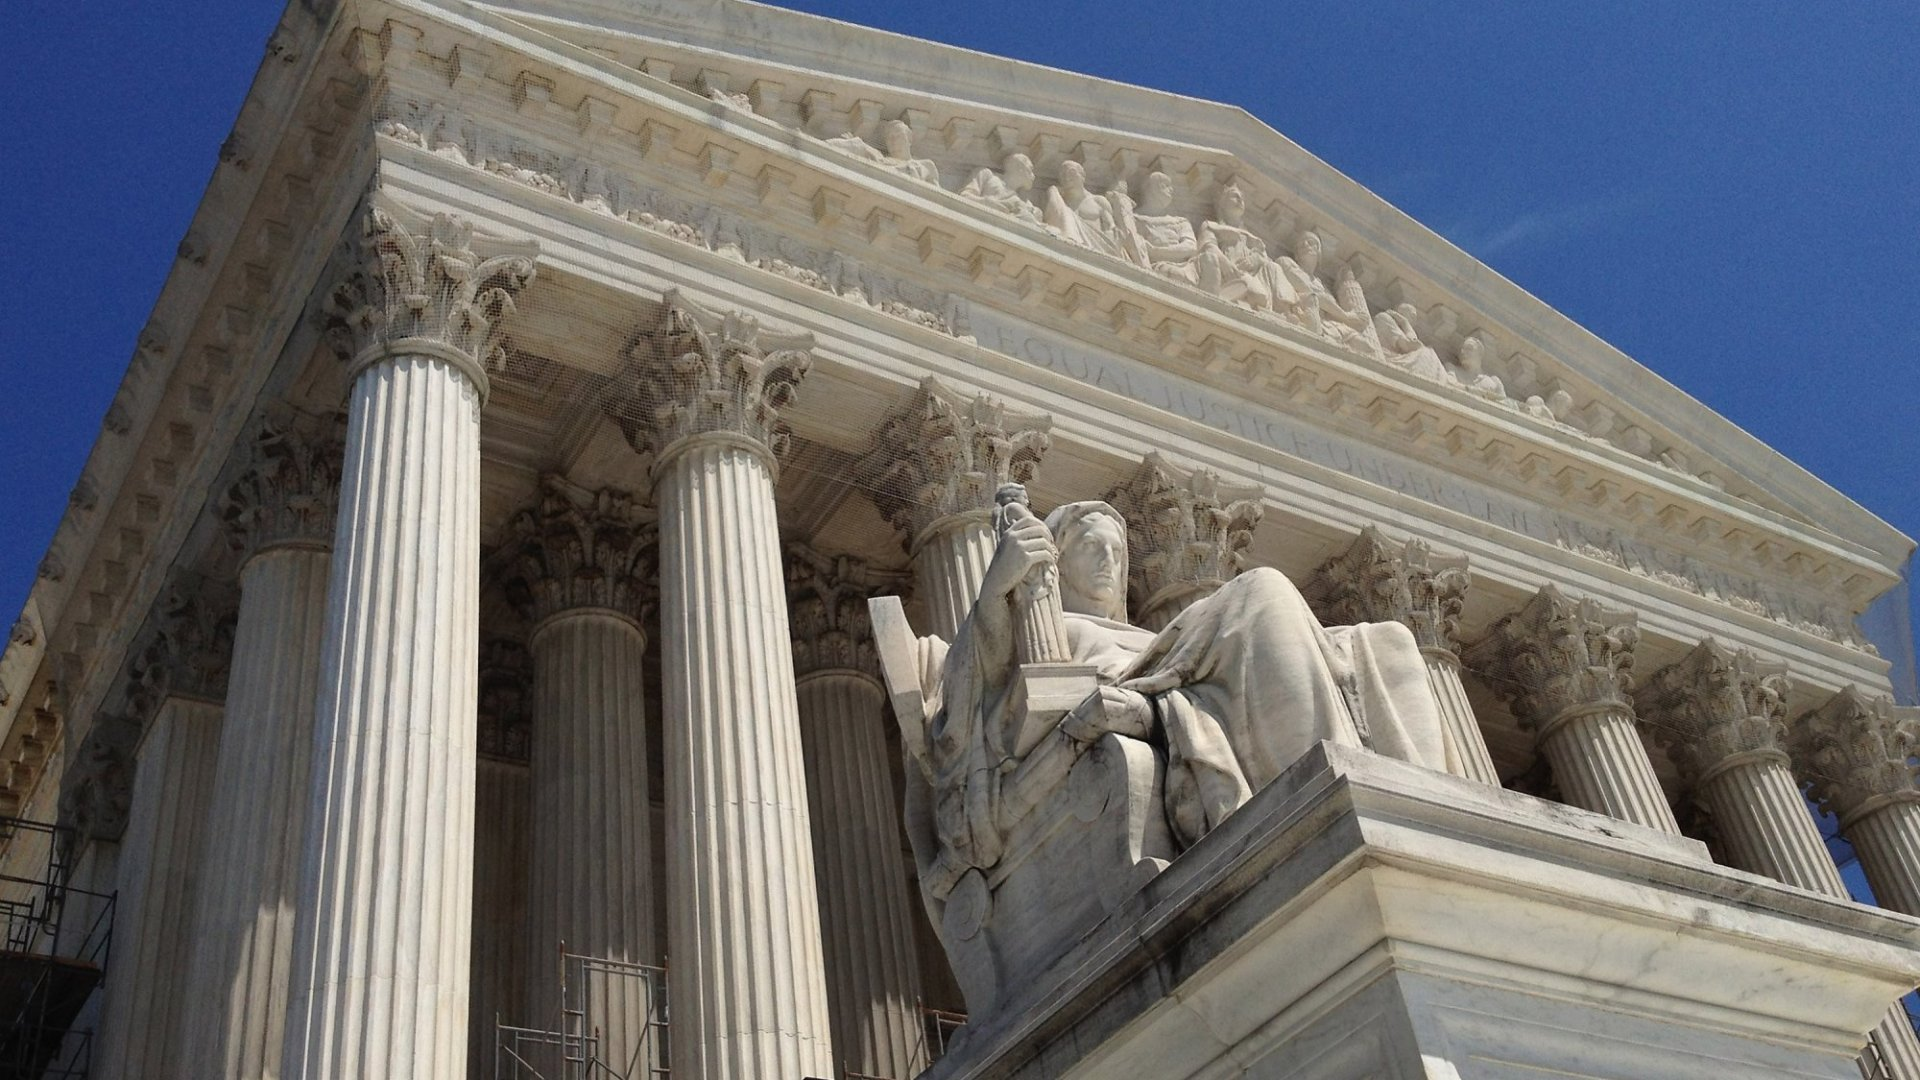 What's Going to Happen if the Supreme Court Rules Against Obamacare